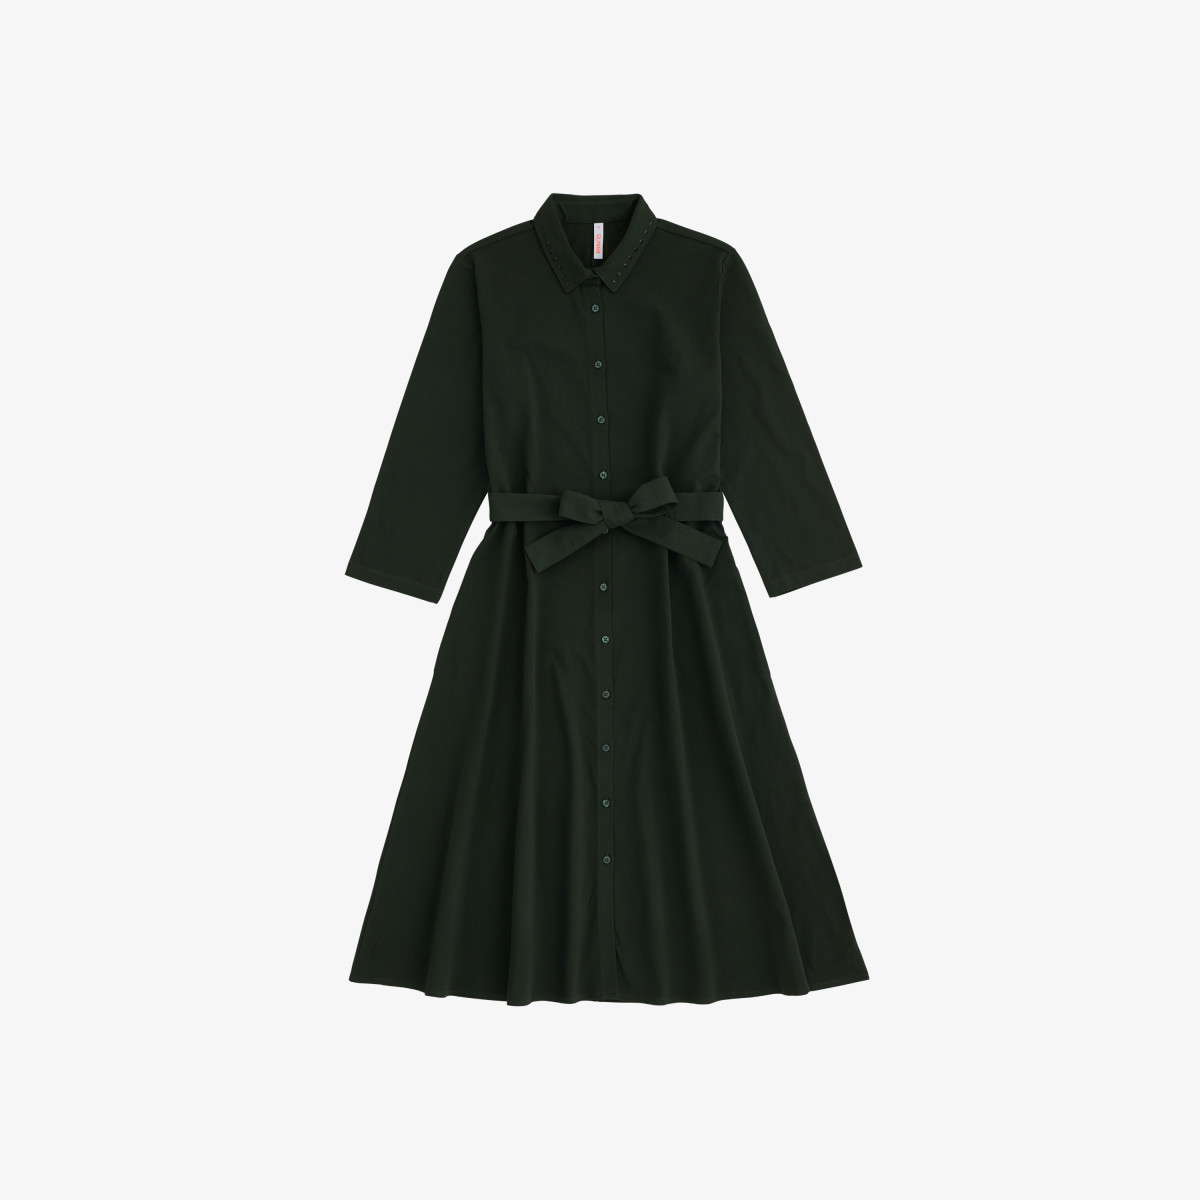 LONG DRESS 3/4 SLV DARK MILITARY